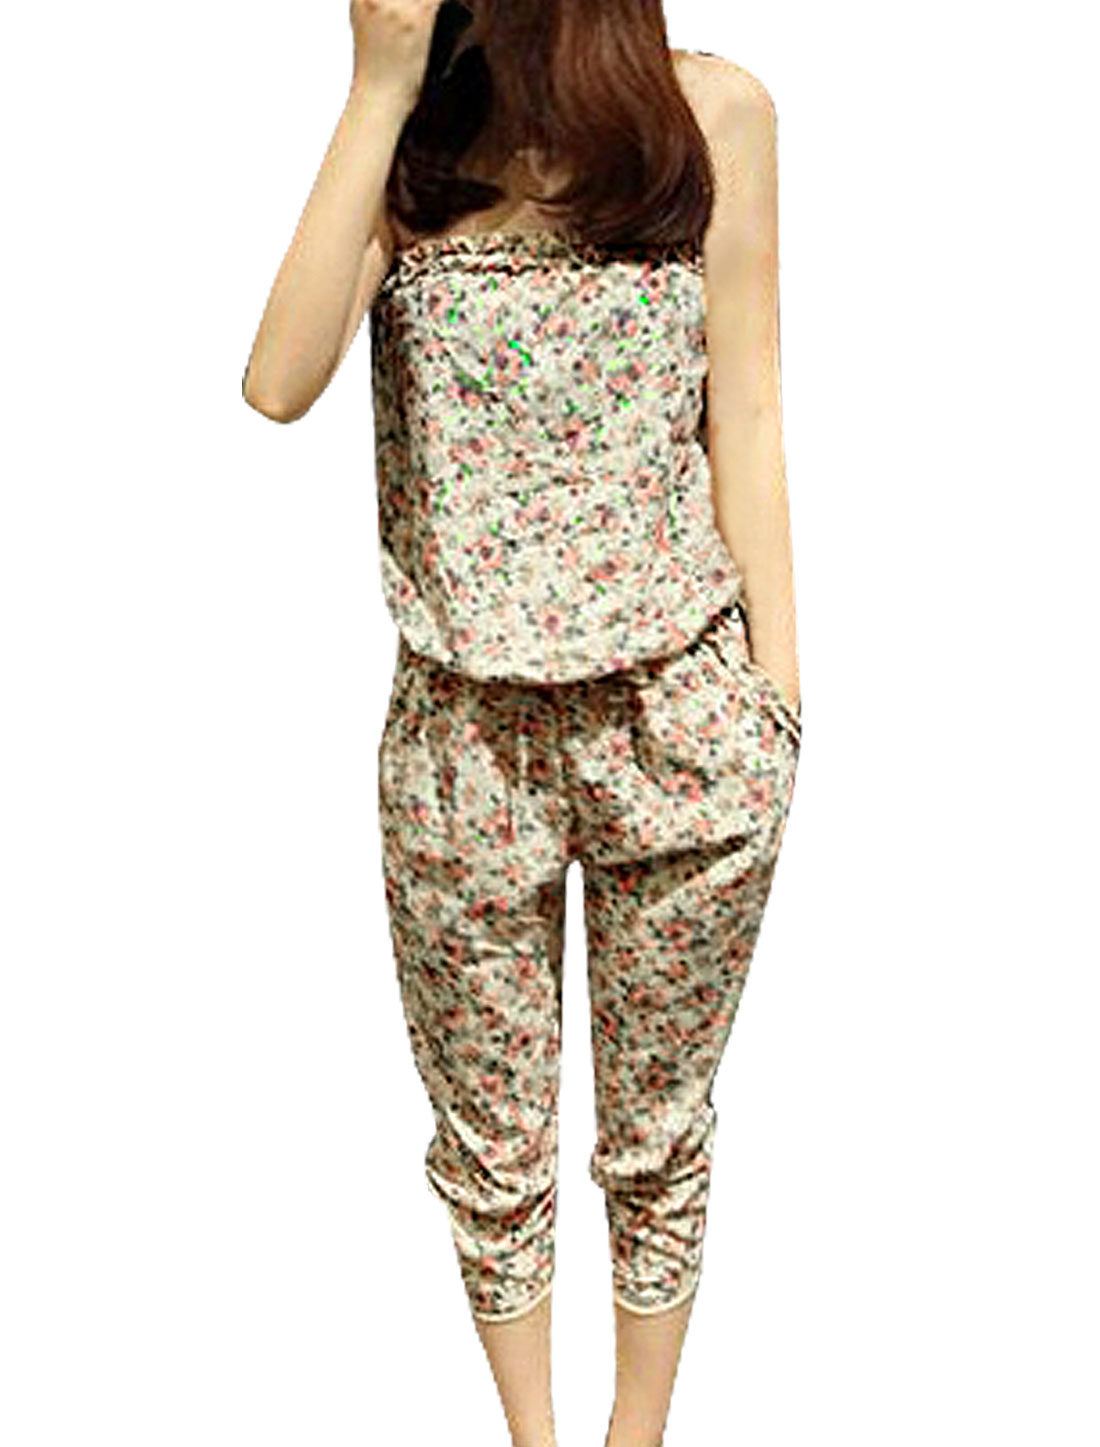 Floral Print Elastic Waist Pockets Jumpsuit XS for Lady